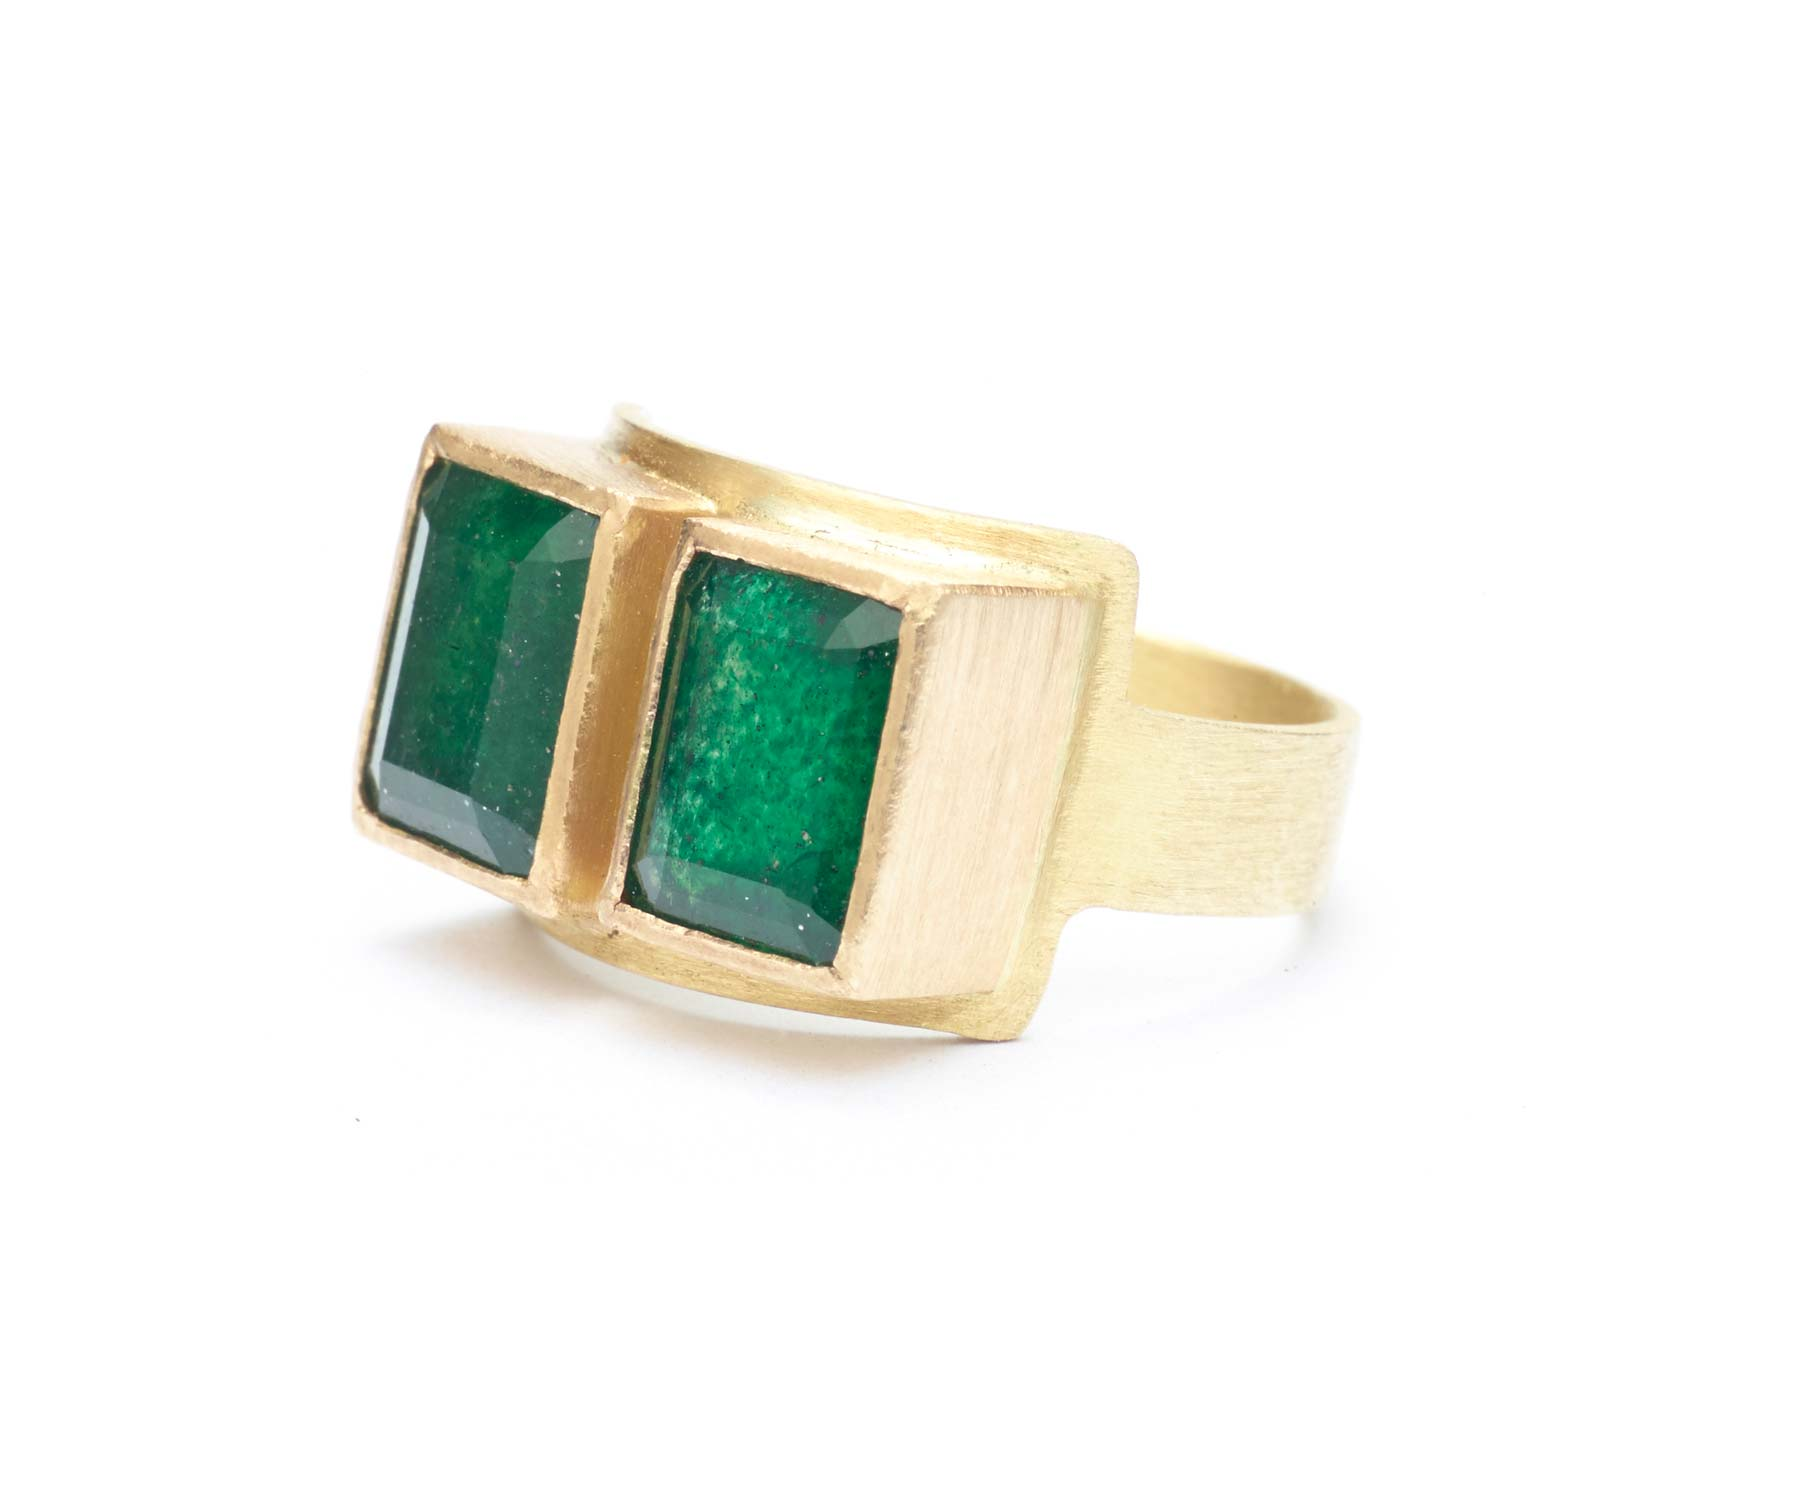 Emerald-and-18k-gold-ring-handcrafted-custom-jewelry-made-in-austin-tx.jpg